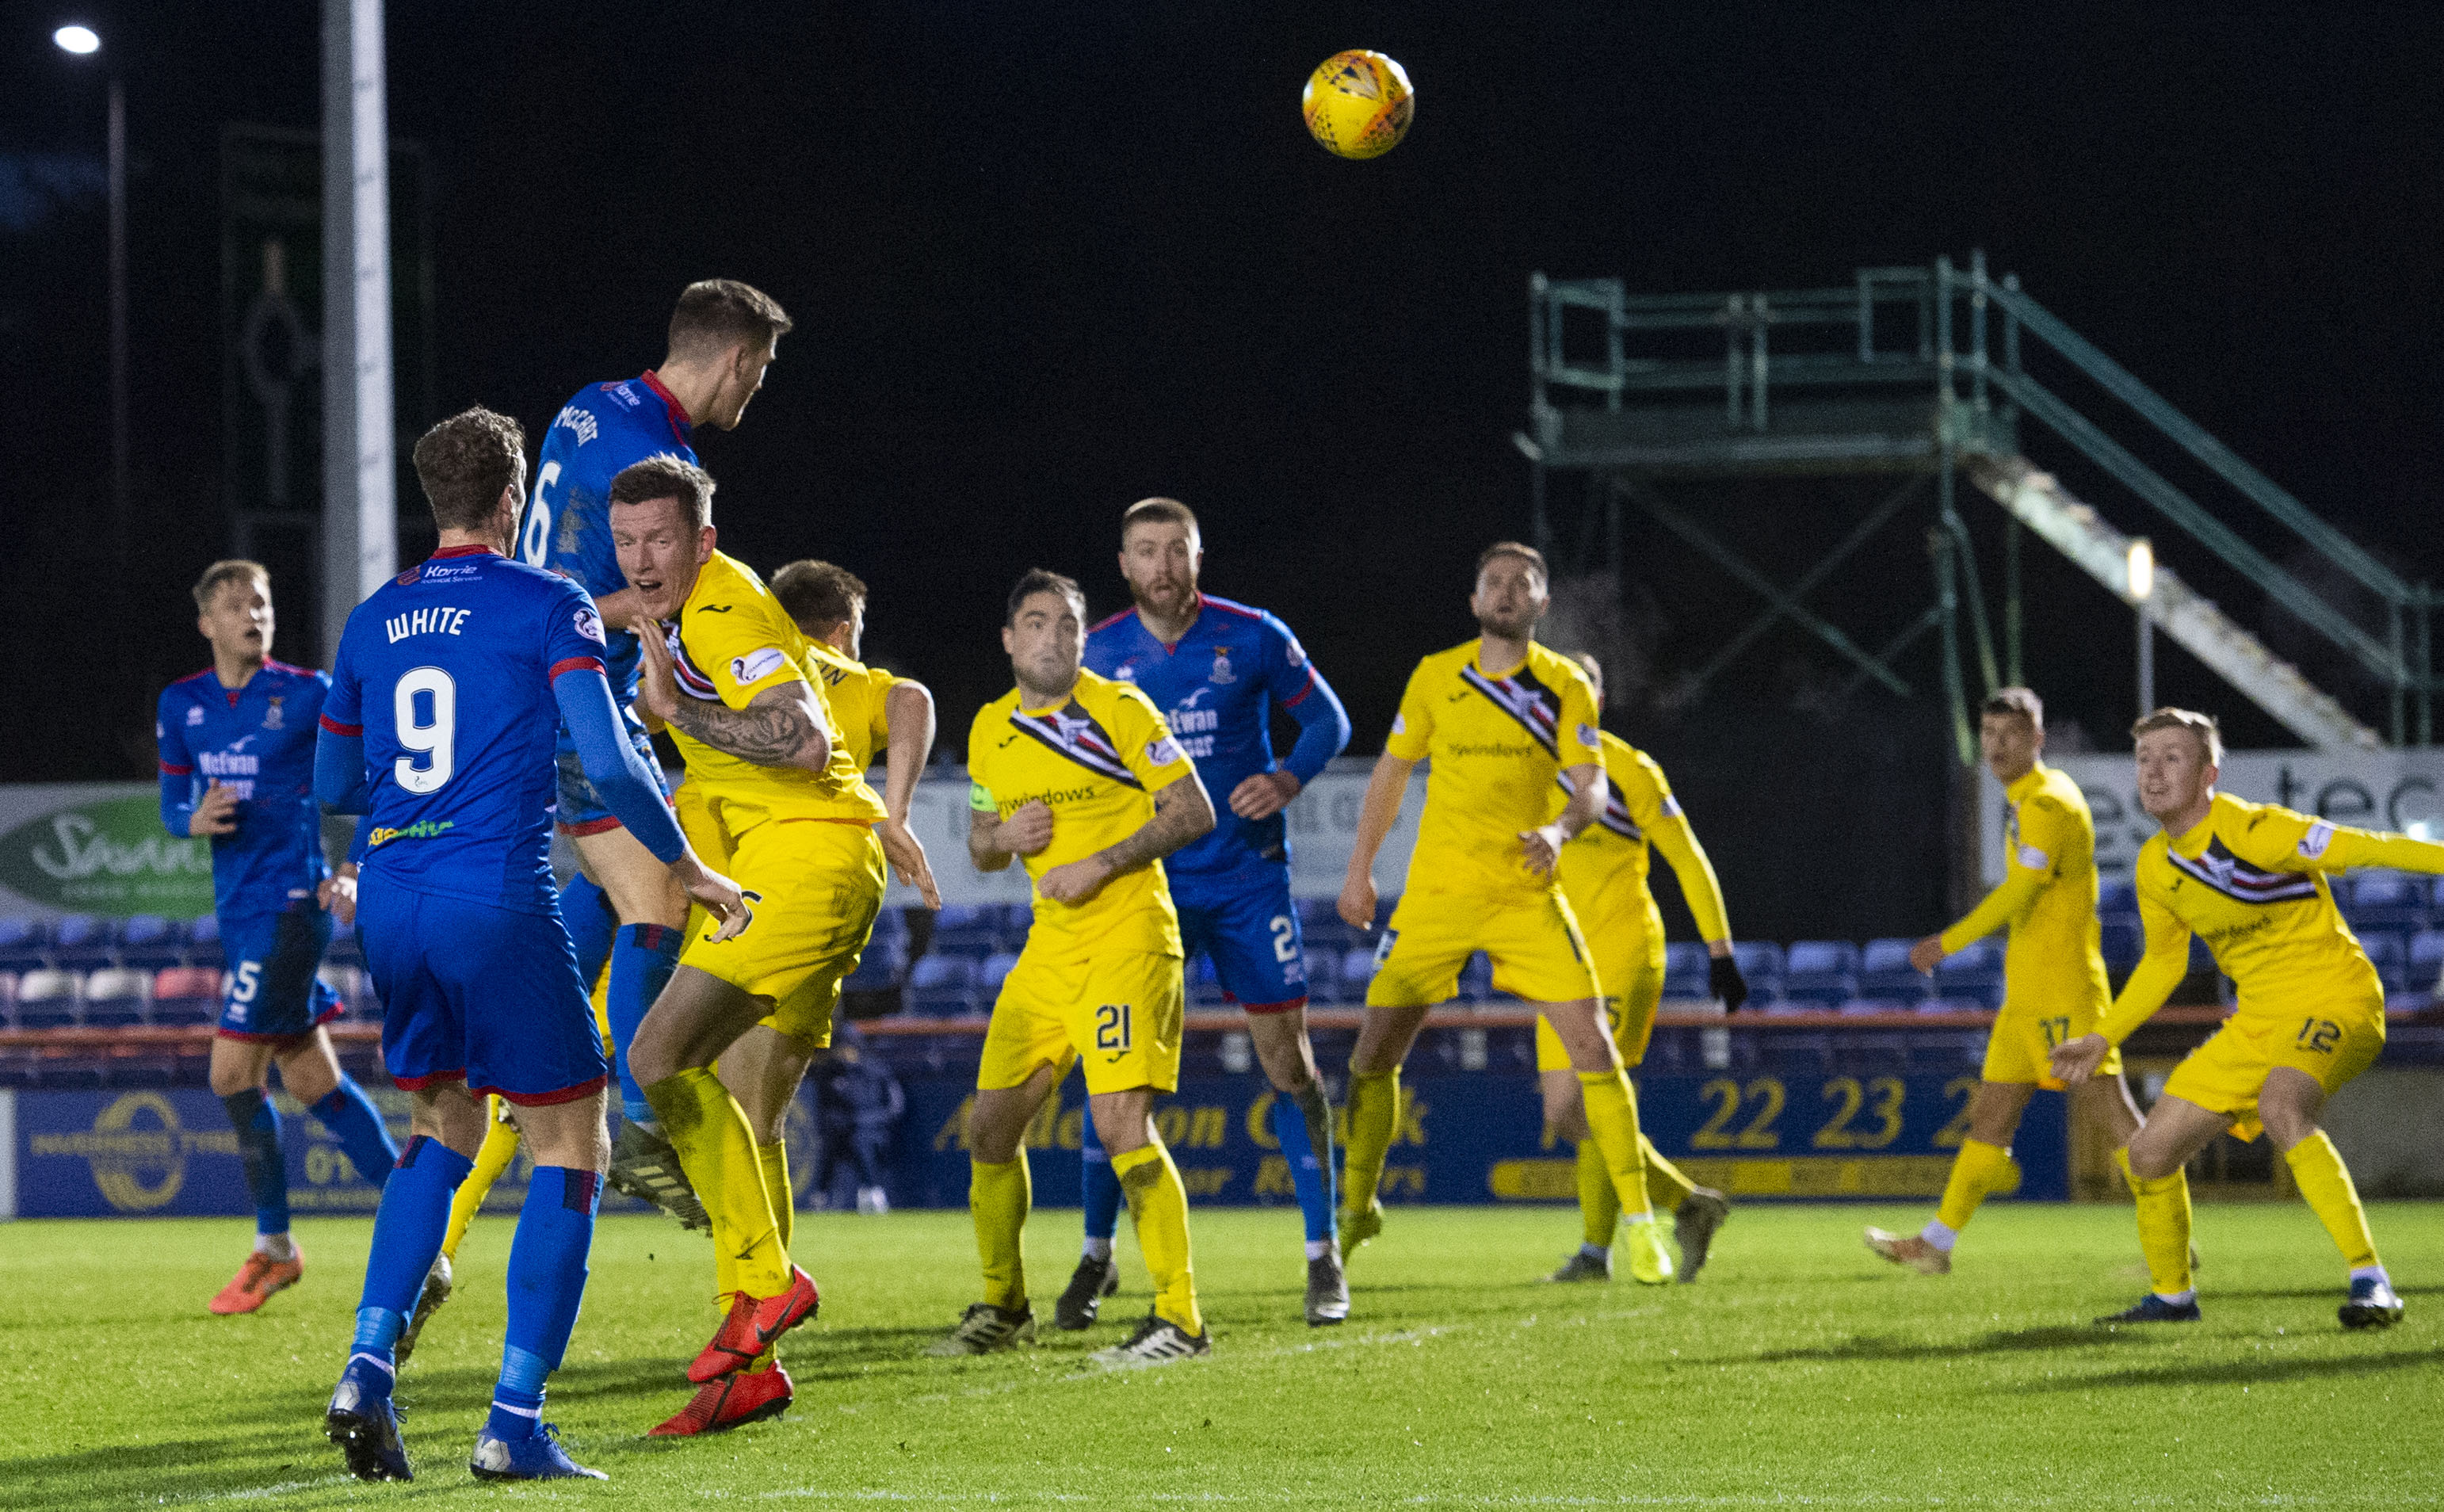 Inverness' Jamie McCart rises to head in the second goal during the Ladbrokes Championship match with Dunfermline Athletic.